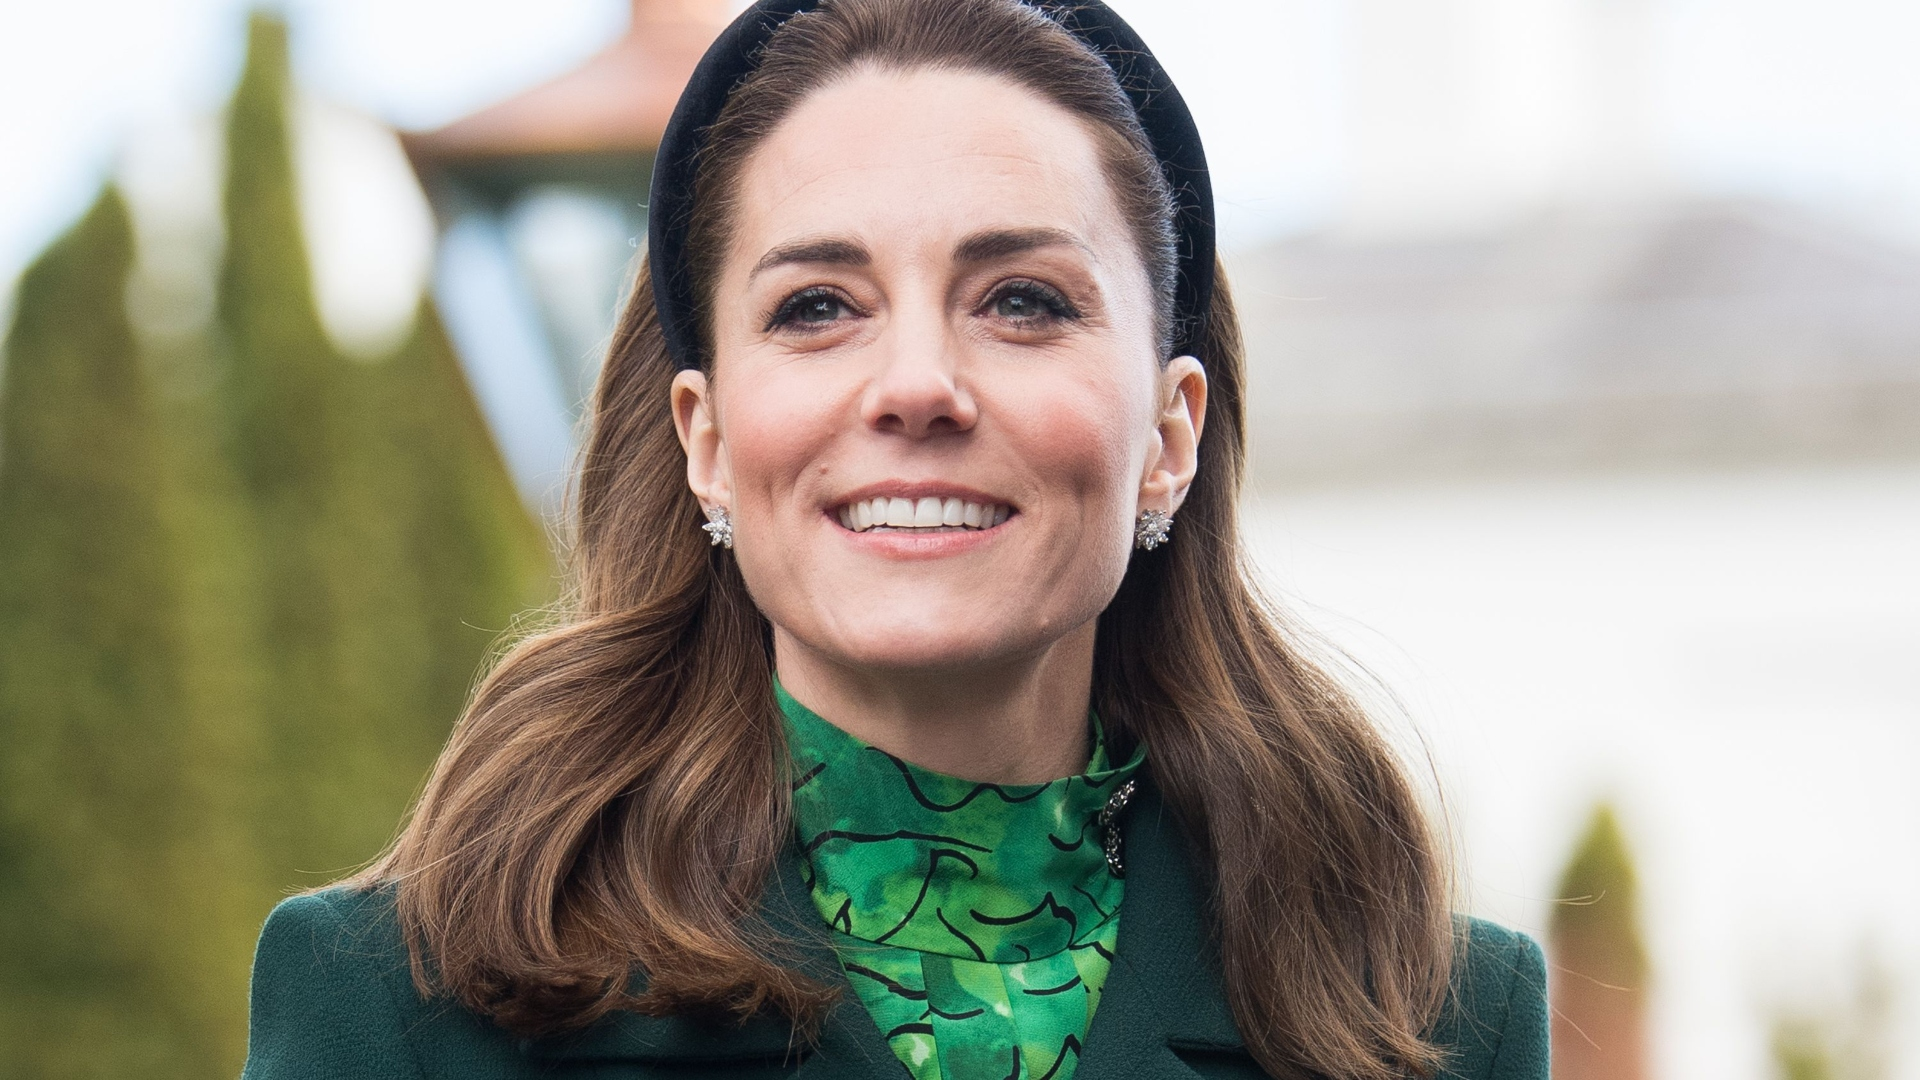 all the best photos of kate middleton s hair over her years as a royal sheknows all the best photos of kate middleton s